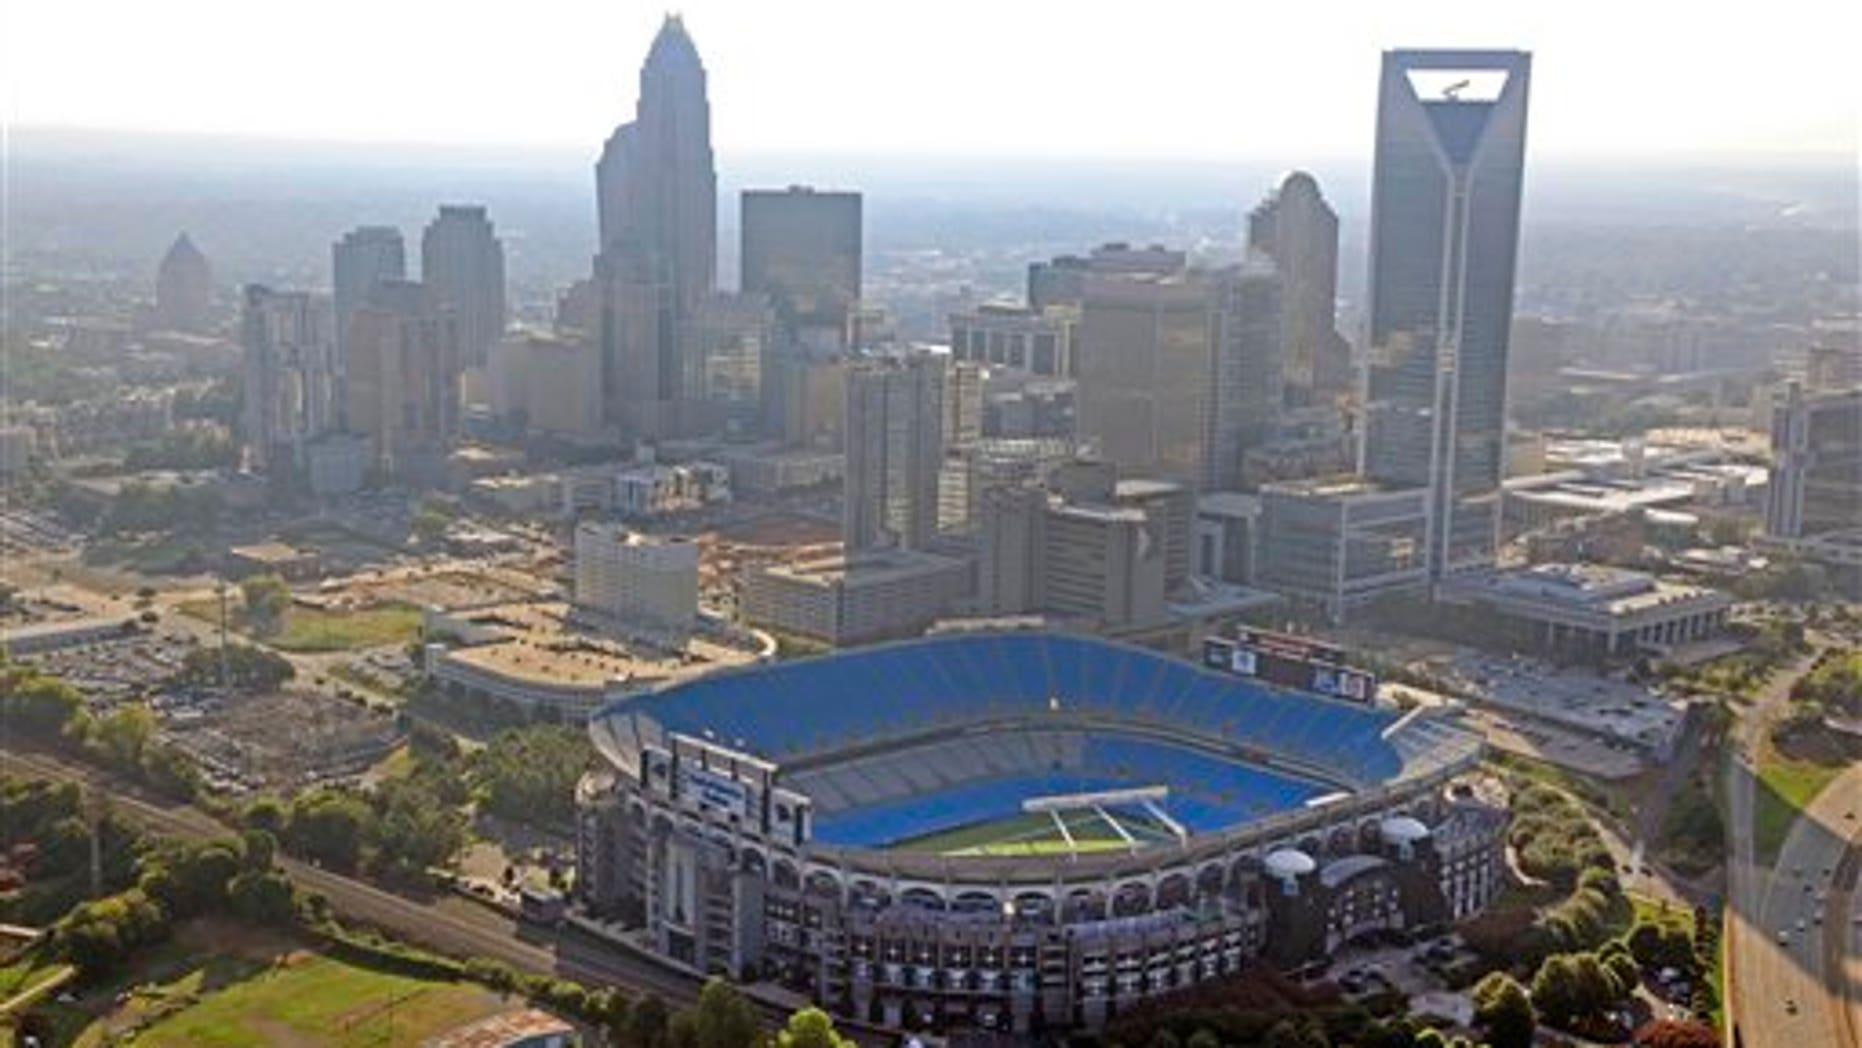 A file photo of the Bank of America Stadium in Charlotte, where President Obama had planned to deliver his speech Thursday before the Democratic National Convention. Democratic officials, citing weather concerns, announced Wednesday that the venue will be changed to the Time Warner Cable Arena.